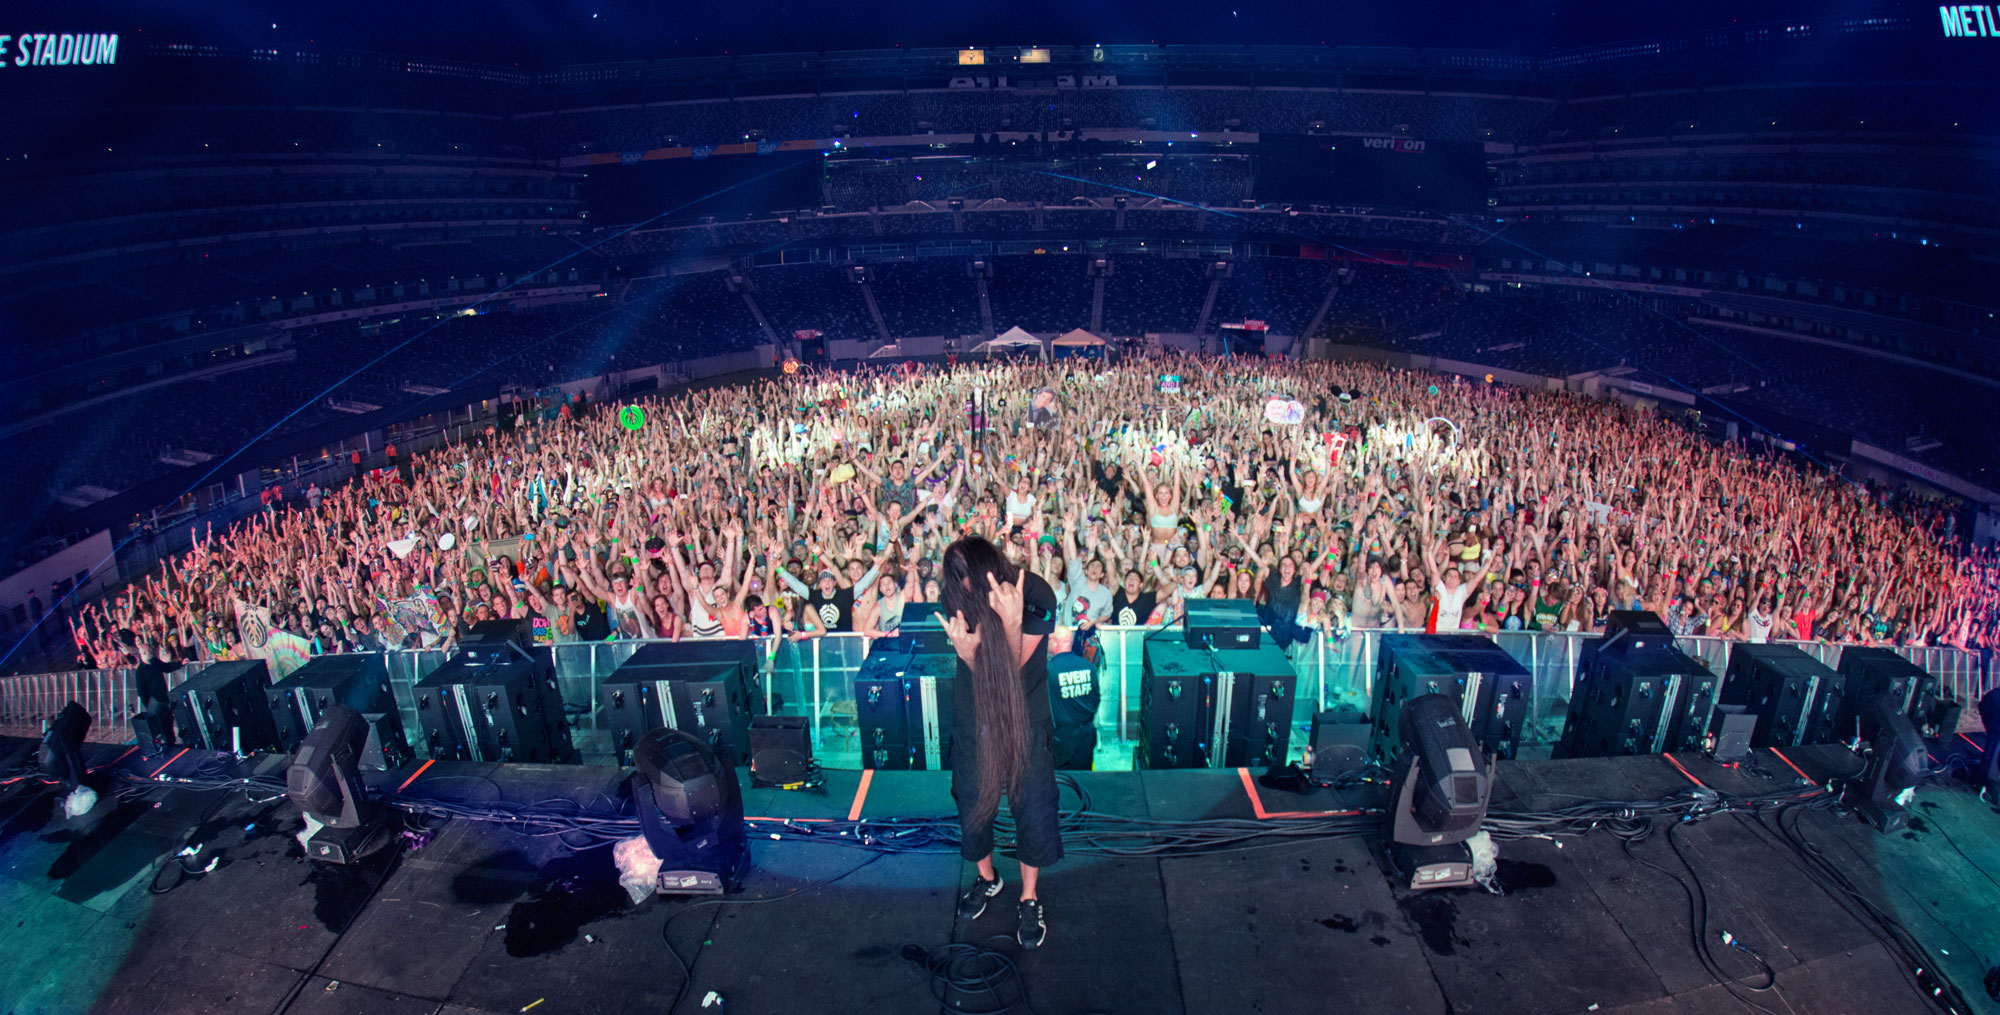 Bassnectar - EDC New York Family Photo 5/25/14